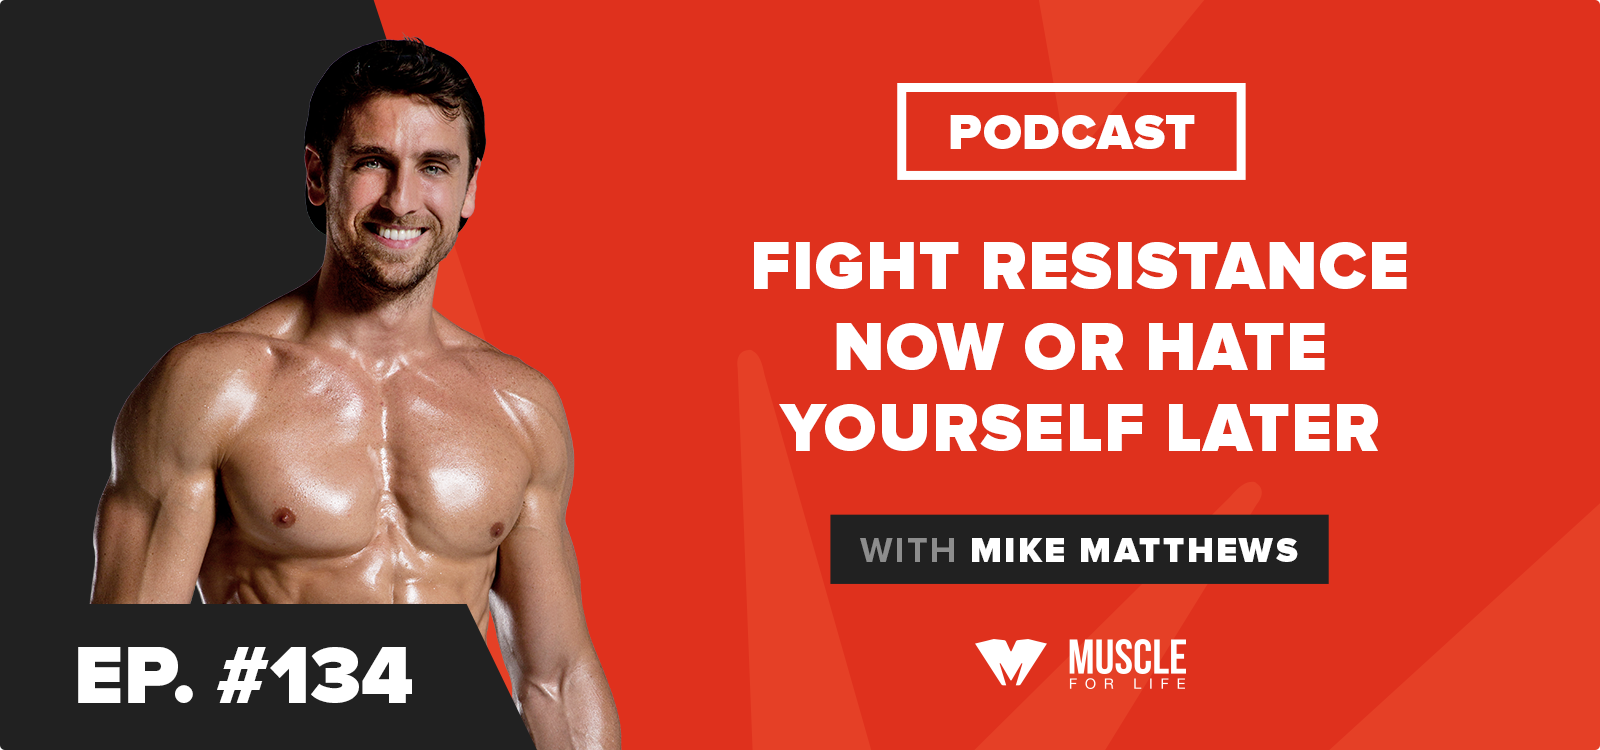 Motivation Monday: Fight Resistance Now or Hate Yourself Later